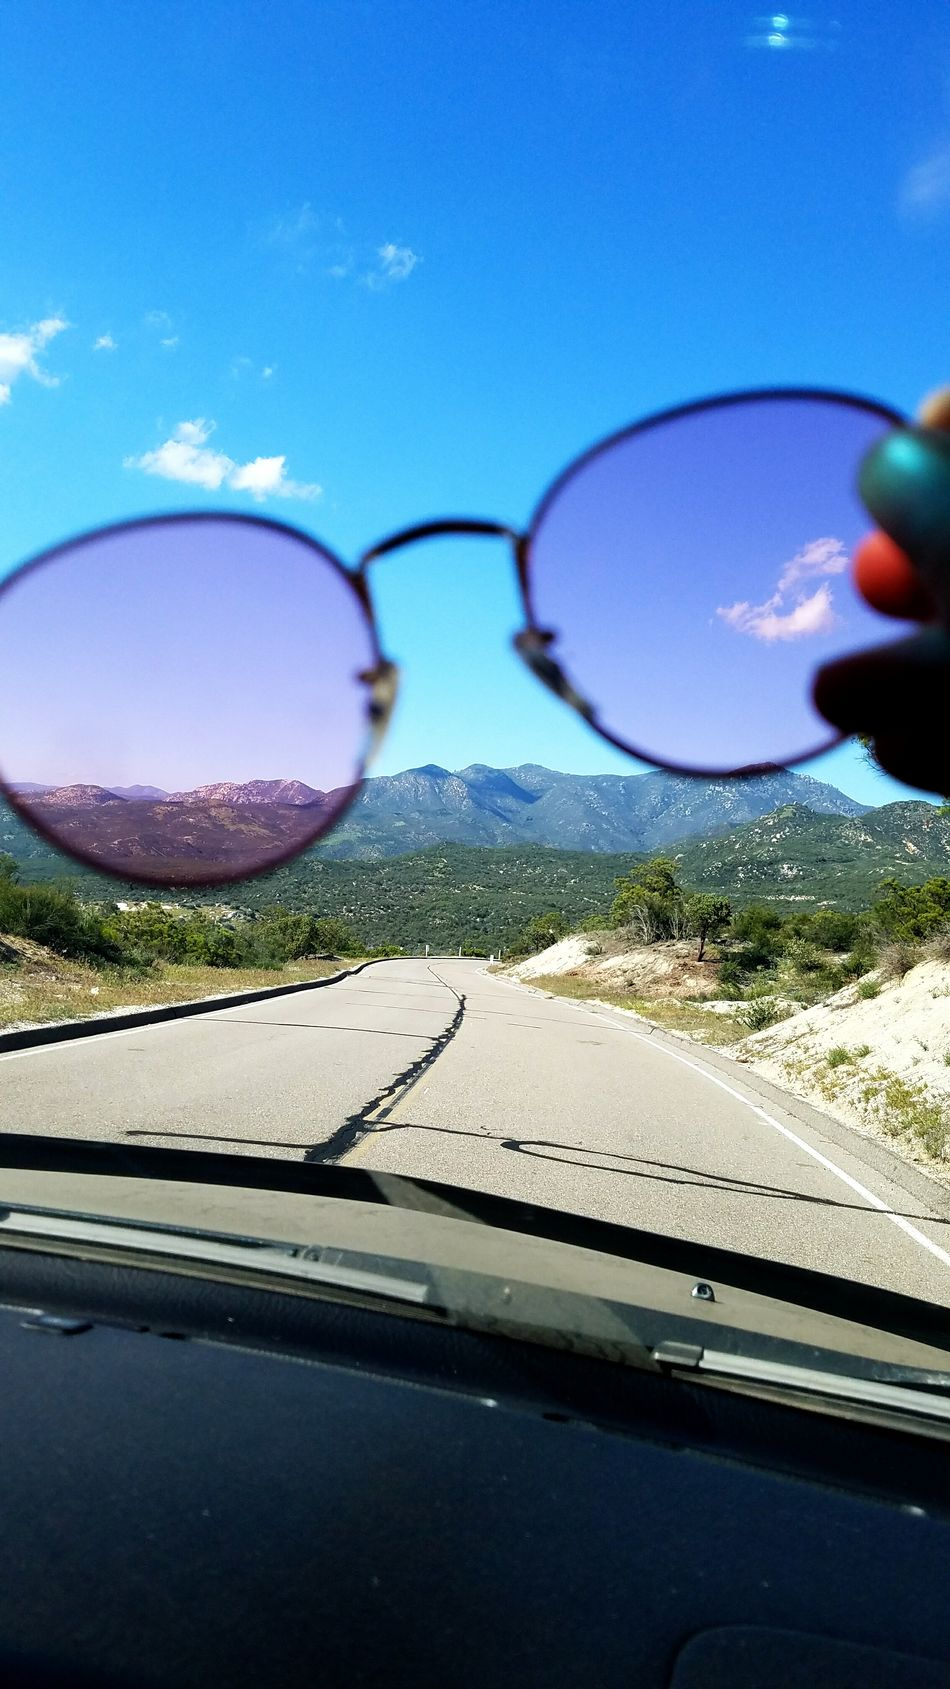 Nature Road Day Sky Car Sun Sunglasses Pink Rosy Rose Colored Glasses Driving Mountain Ramona California Travel Millennial Pink